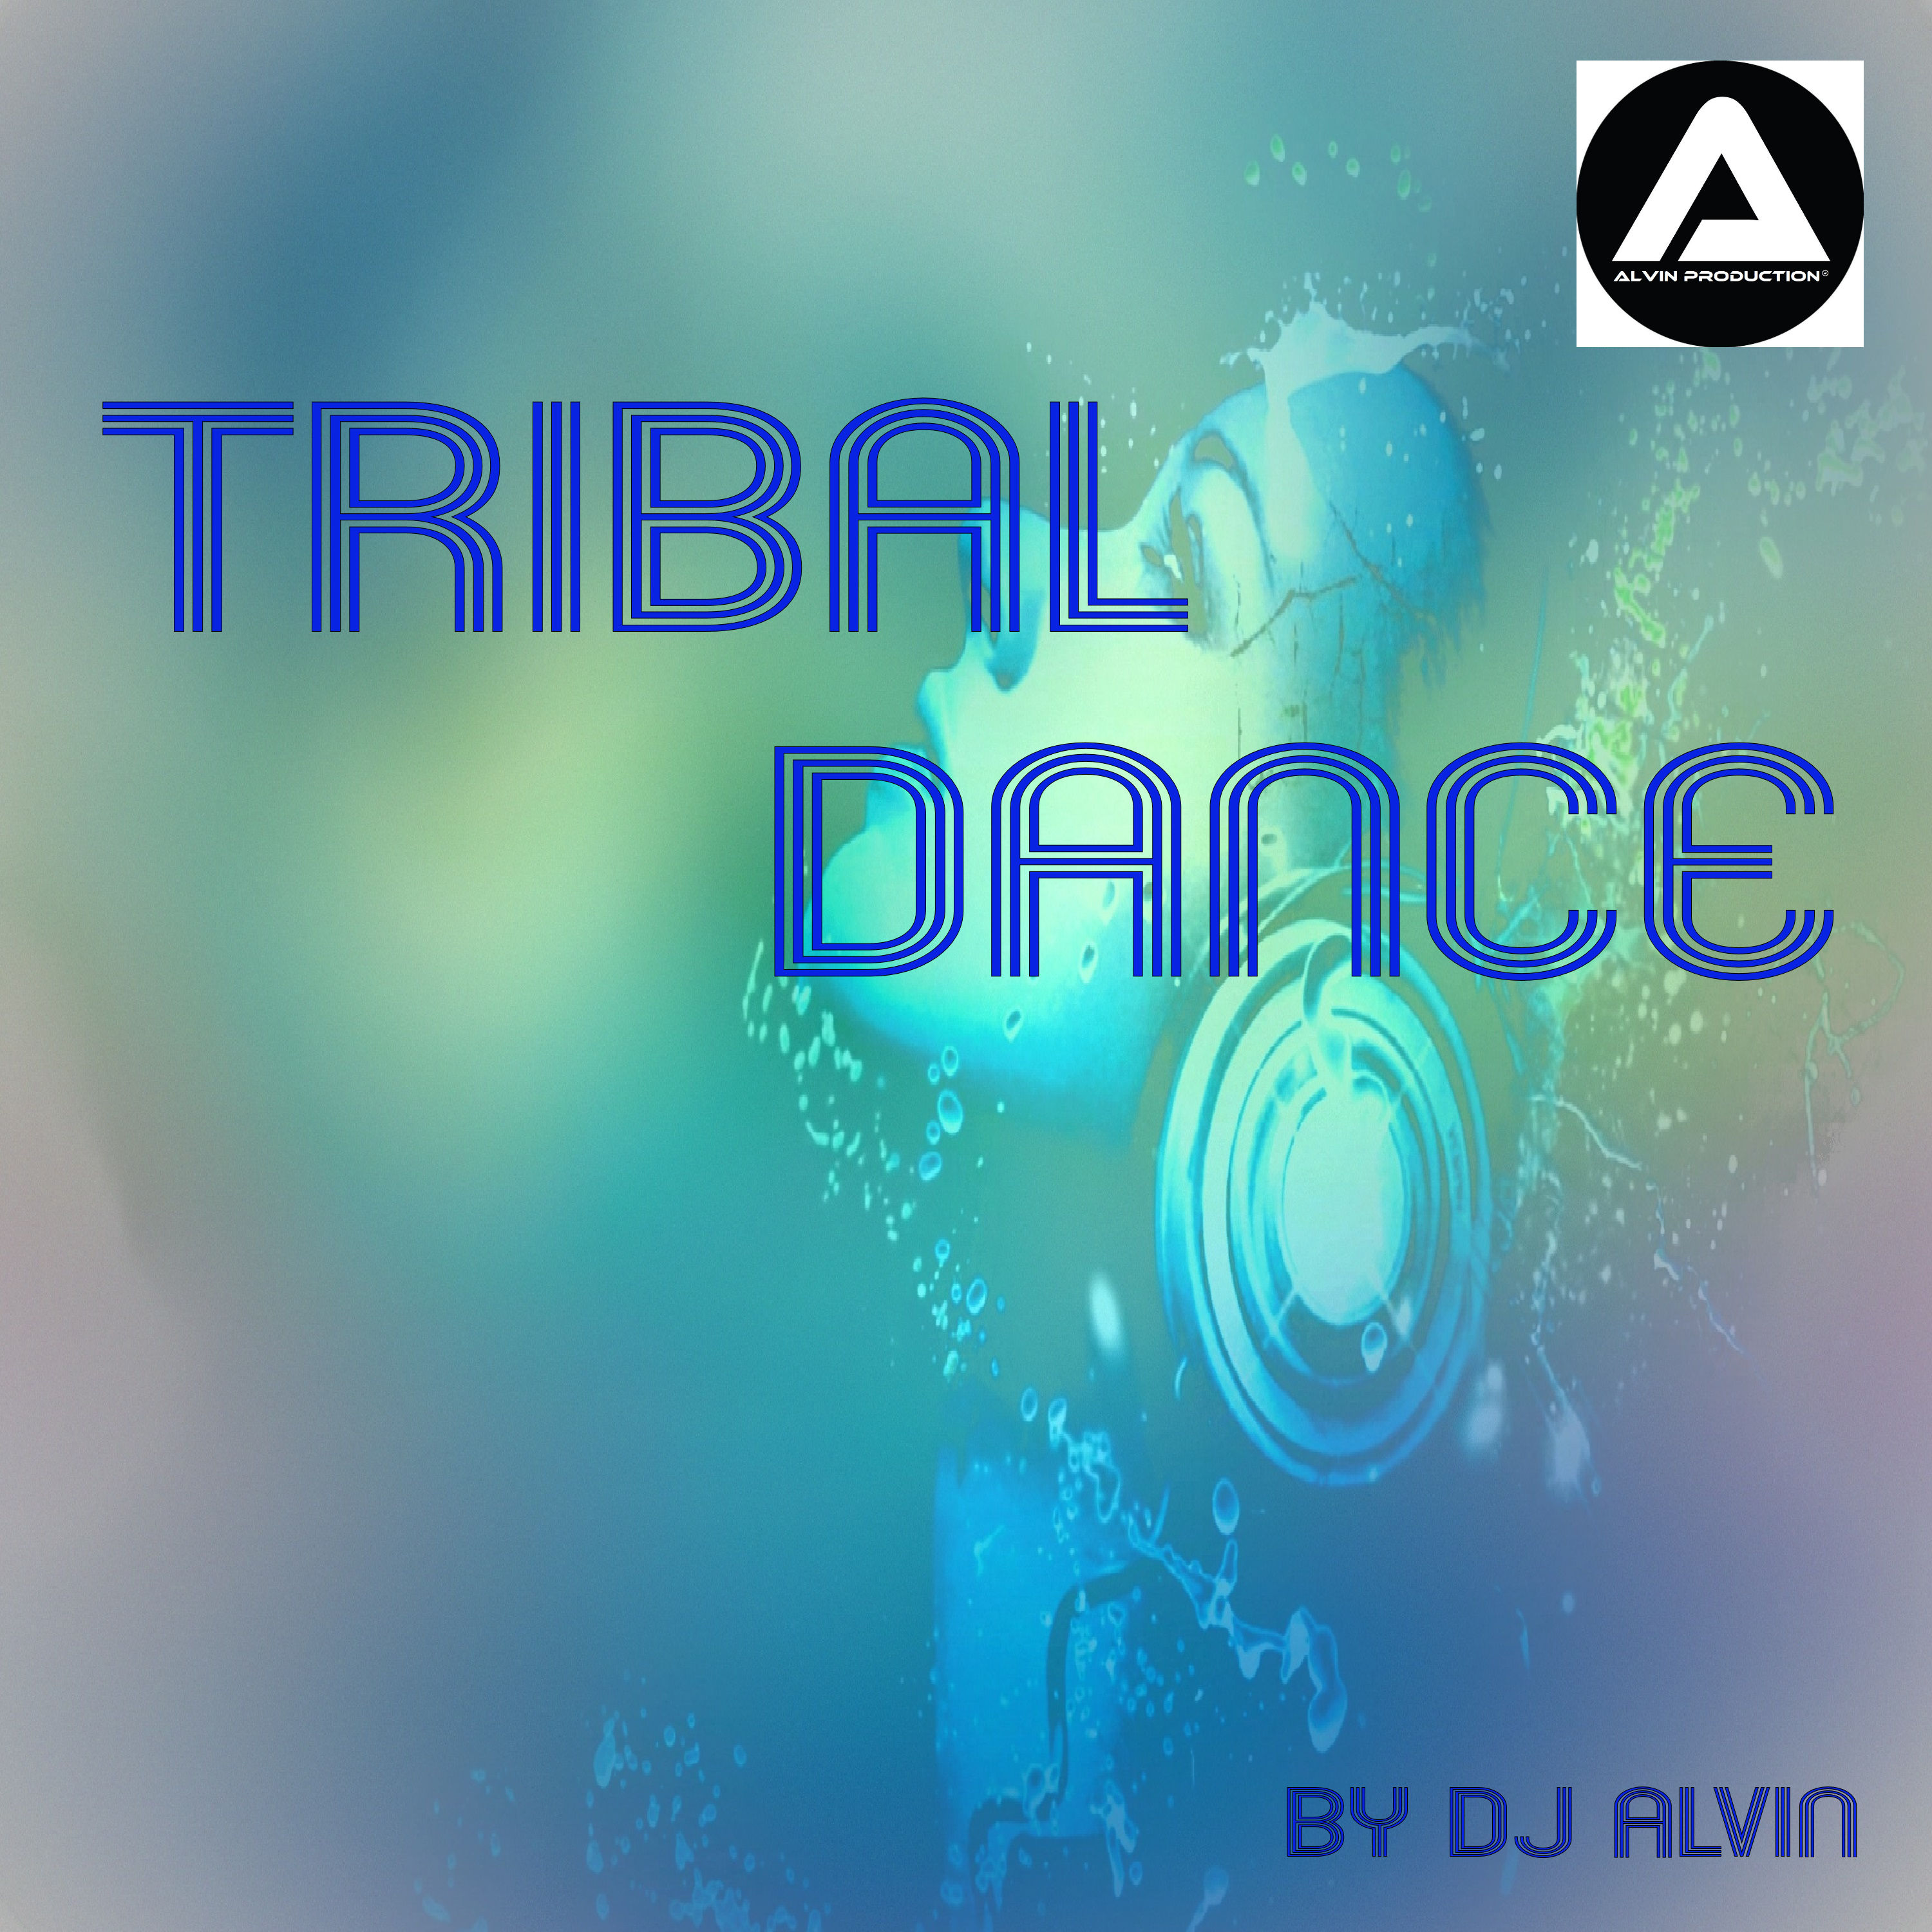 DJ Alvin - Tribal Dance (Extended Mix) by ALVIN PRODUCTION ®